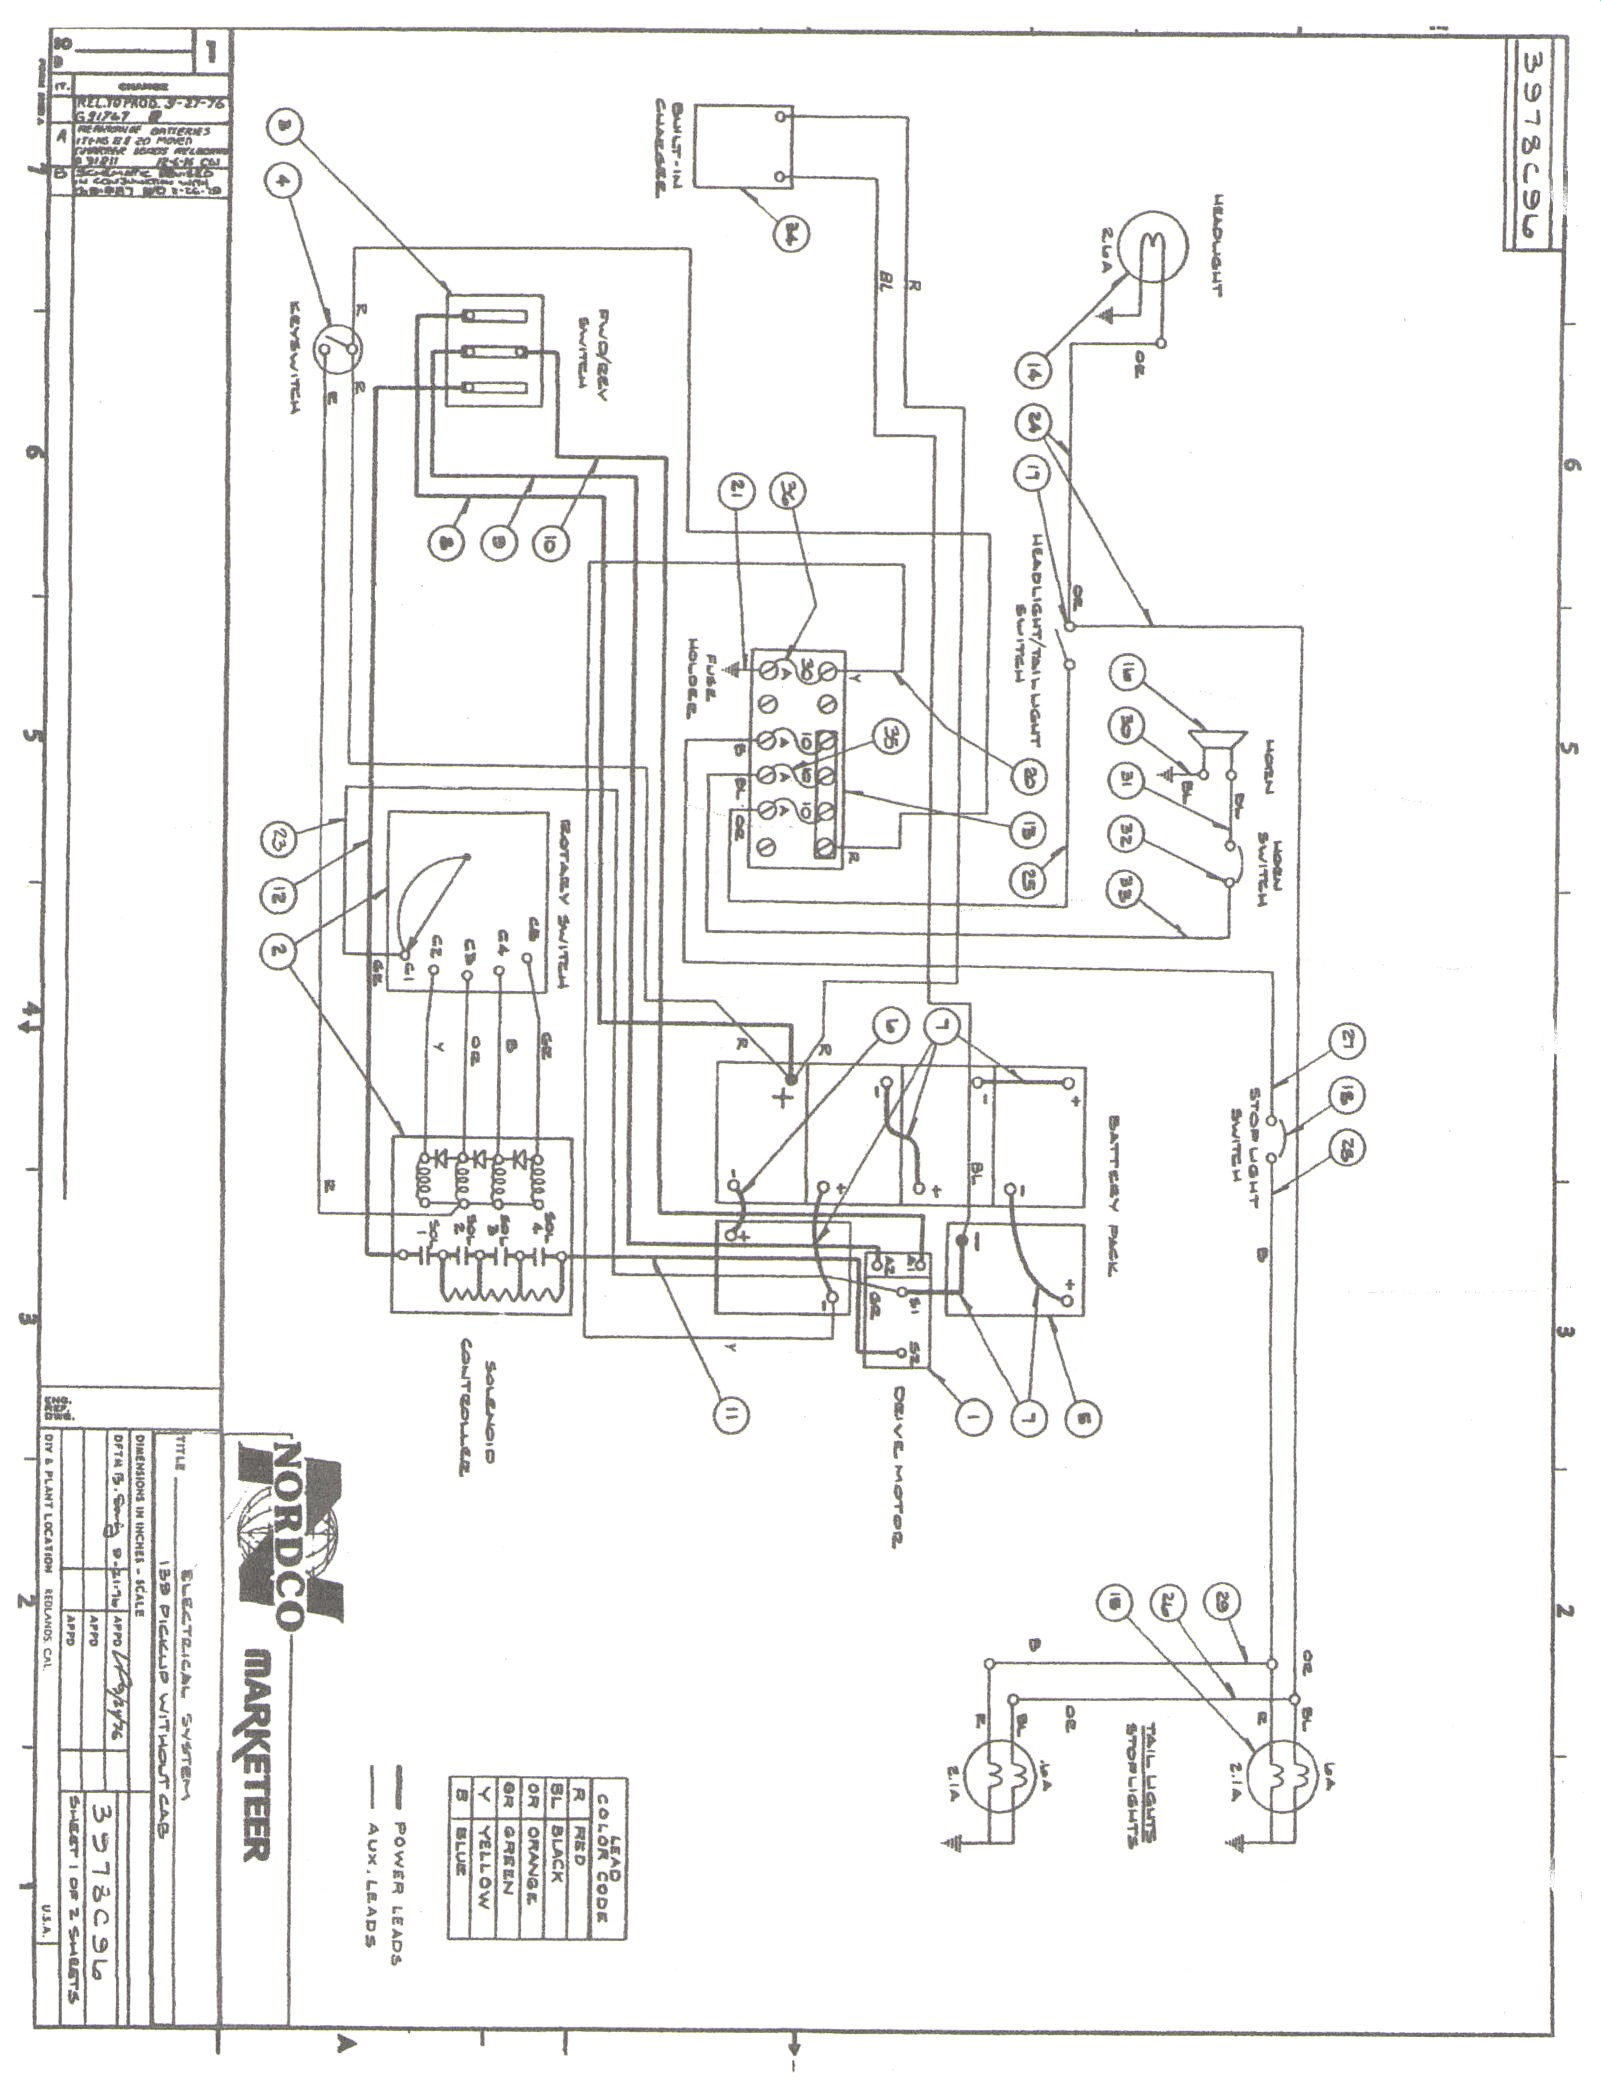 2001 ez go txt wiring diagram with Gallery on Car Wiring Diagram Ez Go Golf Cart Battery as well Ezgo Txt Fuse Box together with Index as well Watch likewise 4ekul Older Model Cushman Wheel Turf Truck I Cannot Find.